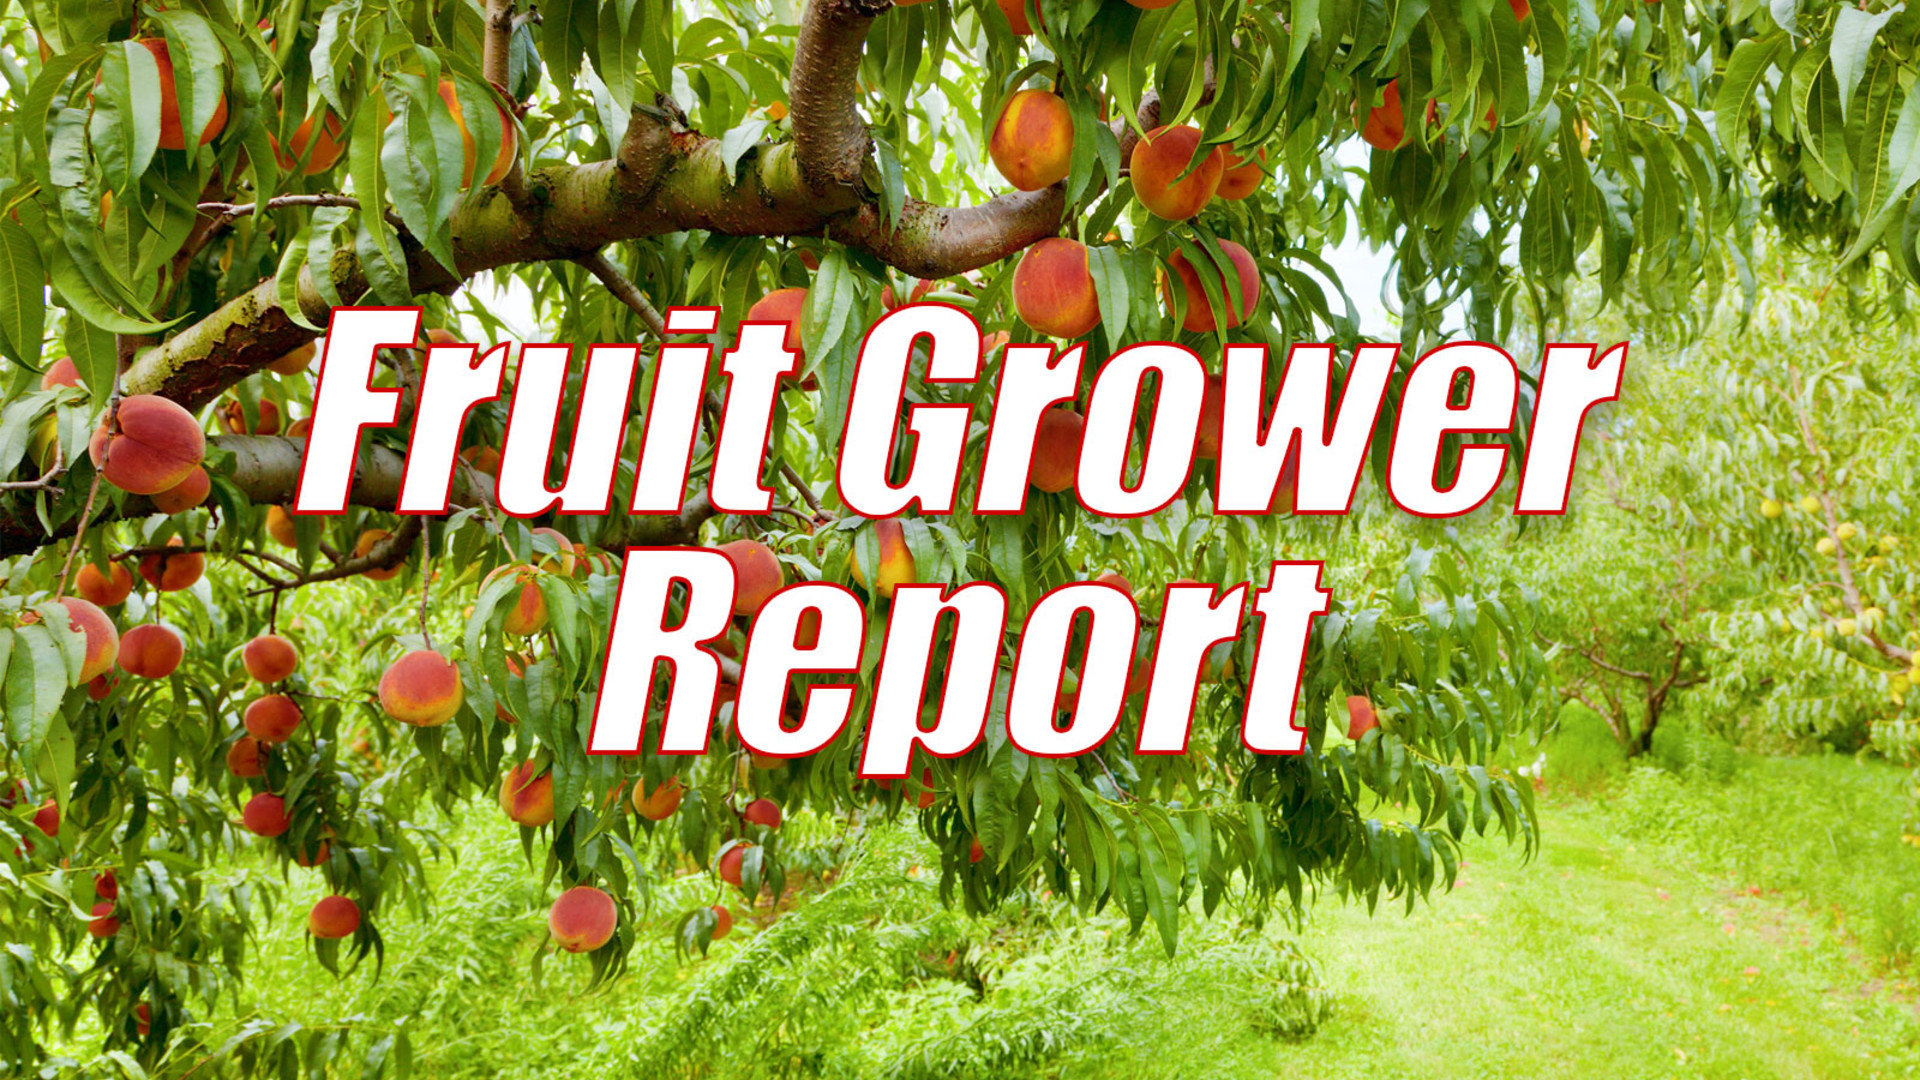 Fruit Grower Report